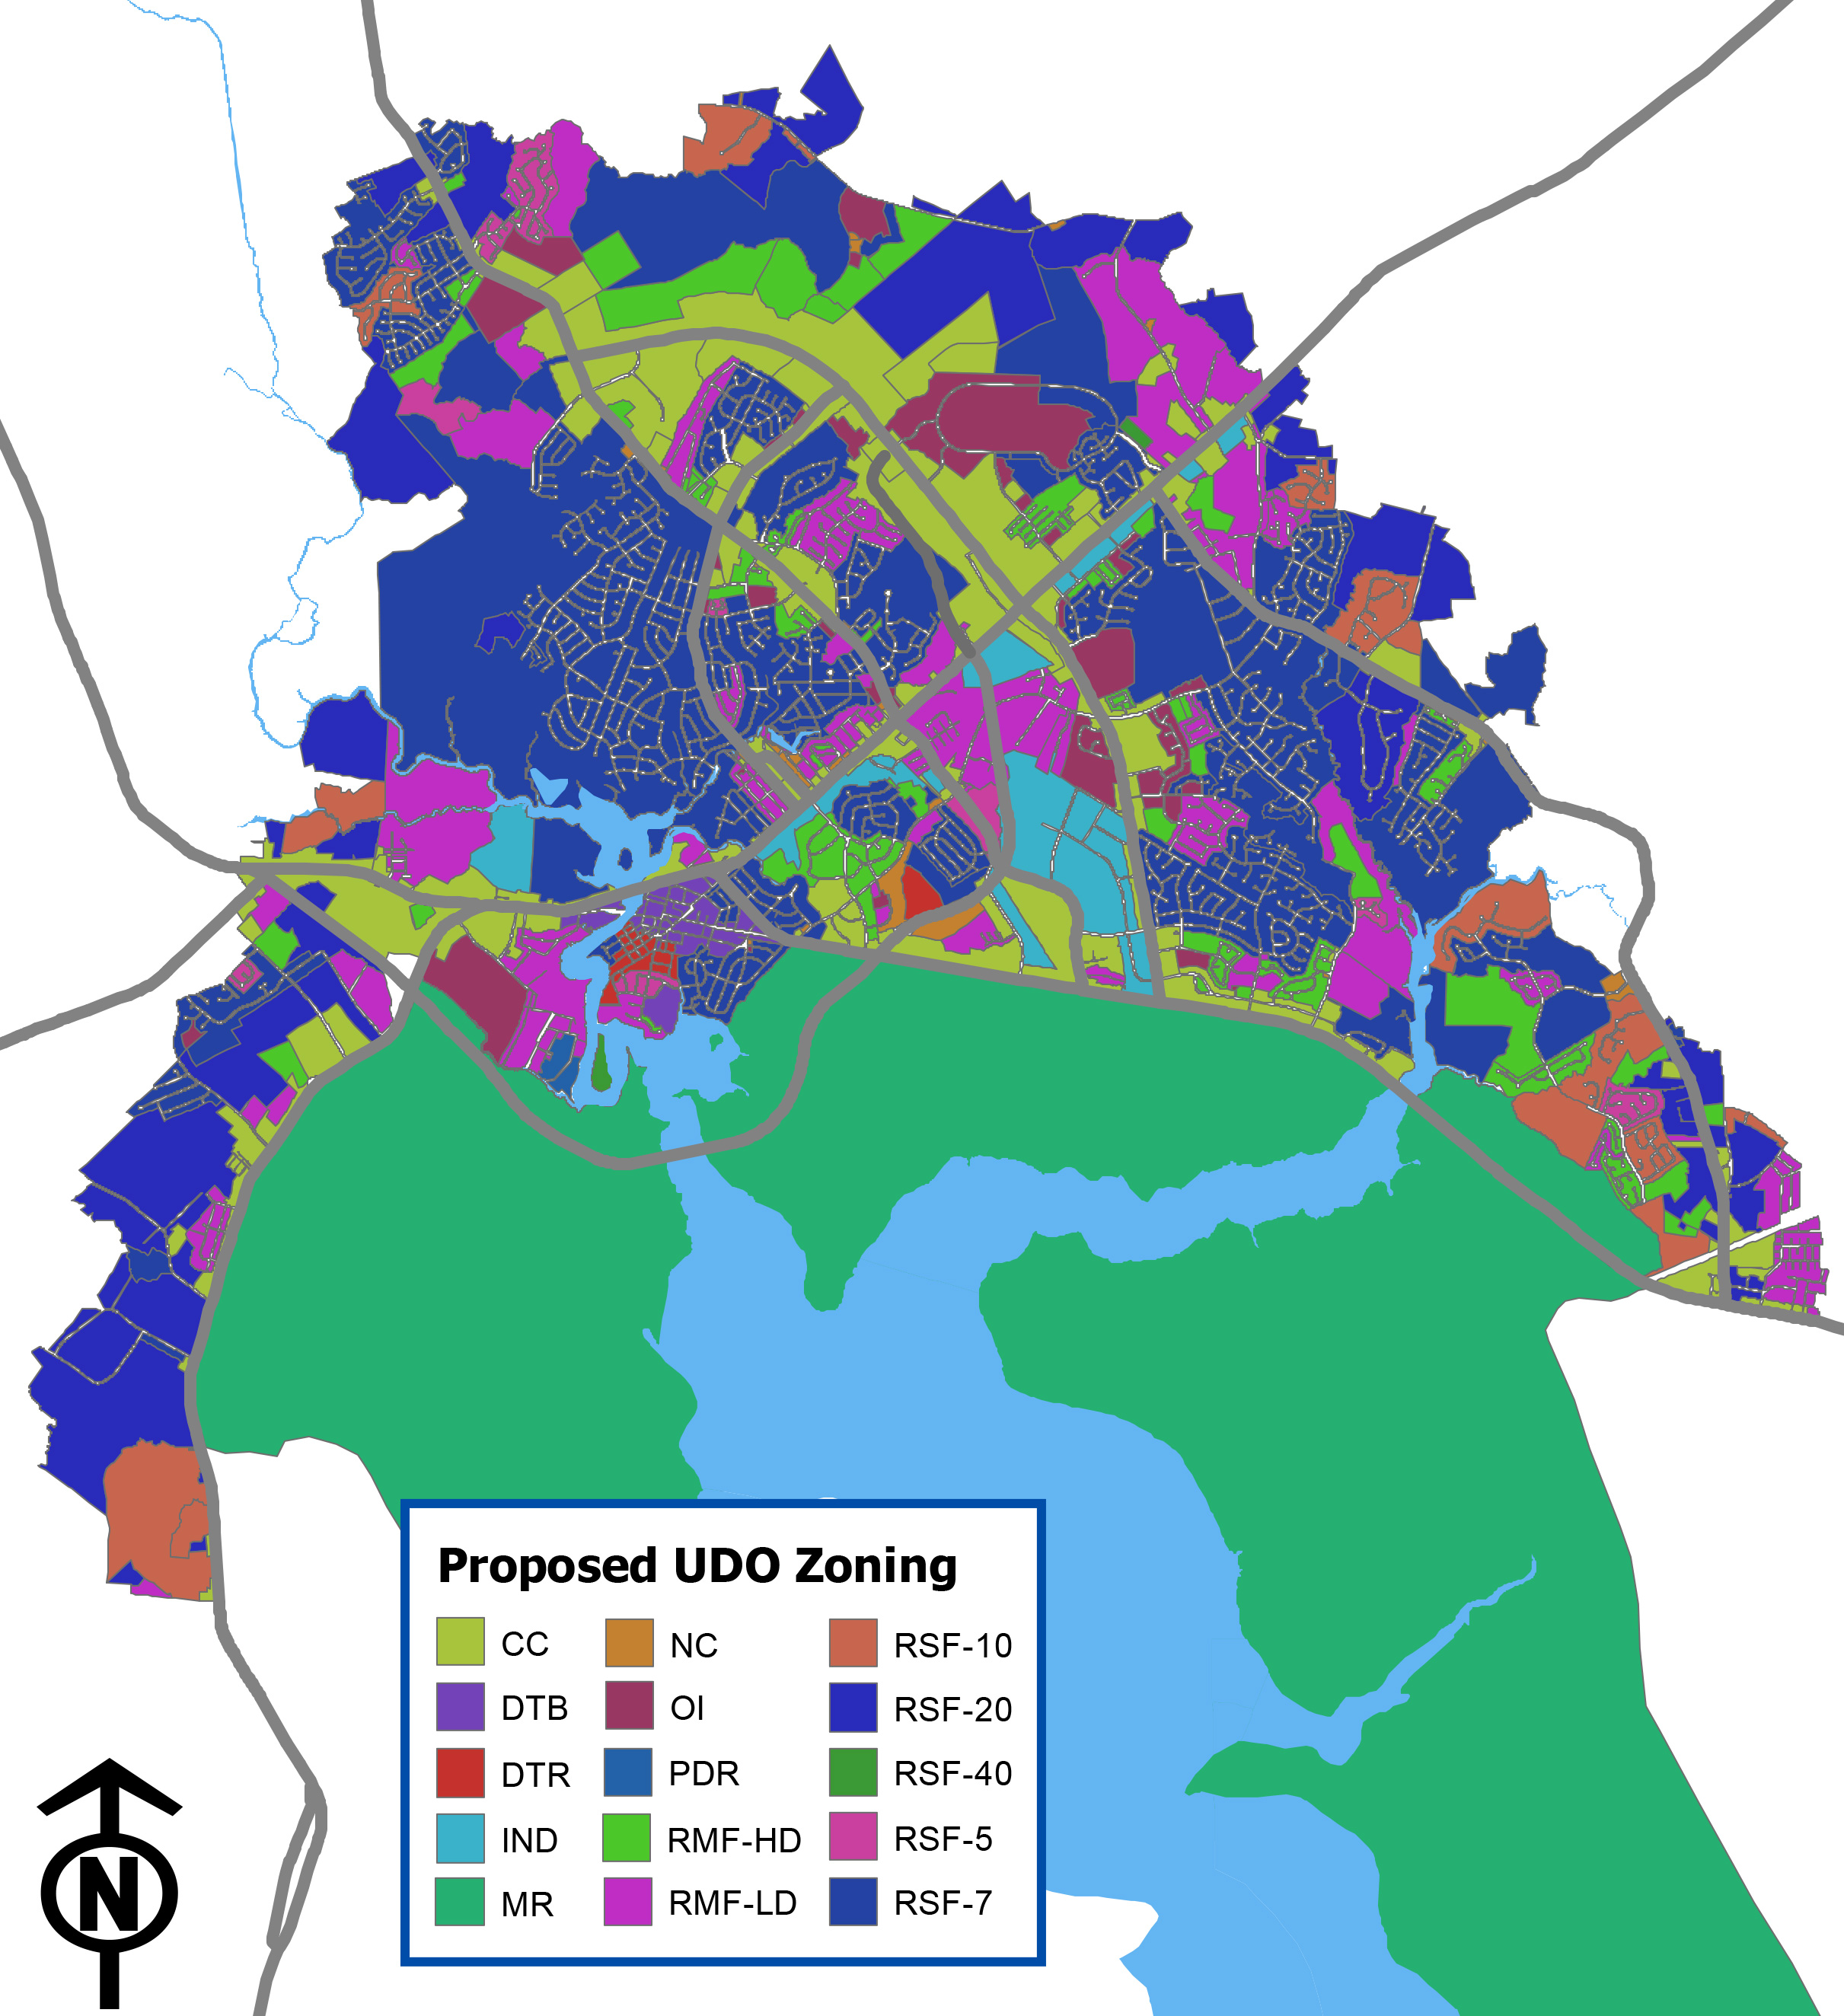 Proposed UDO Zoning Map